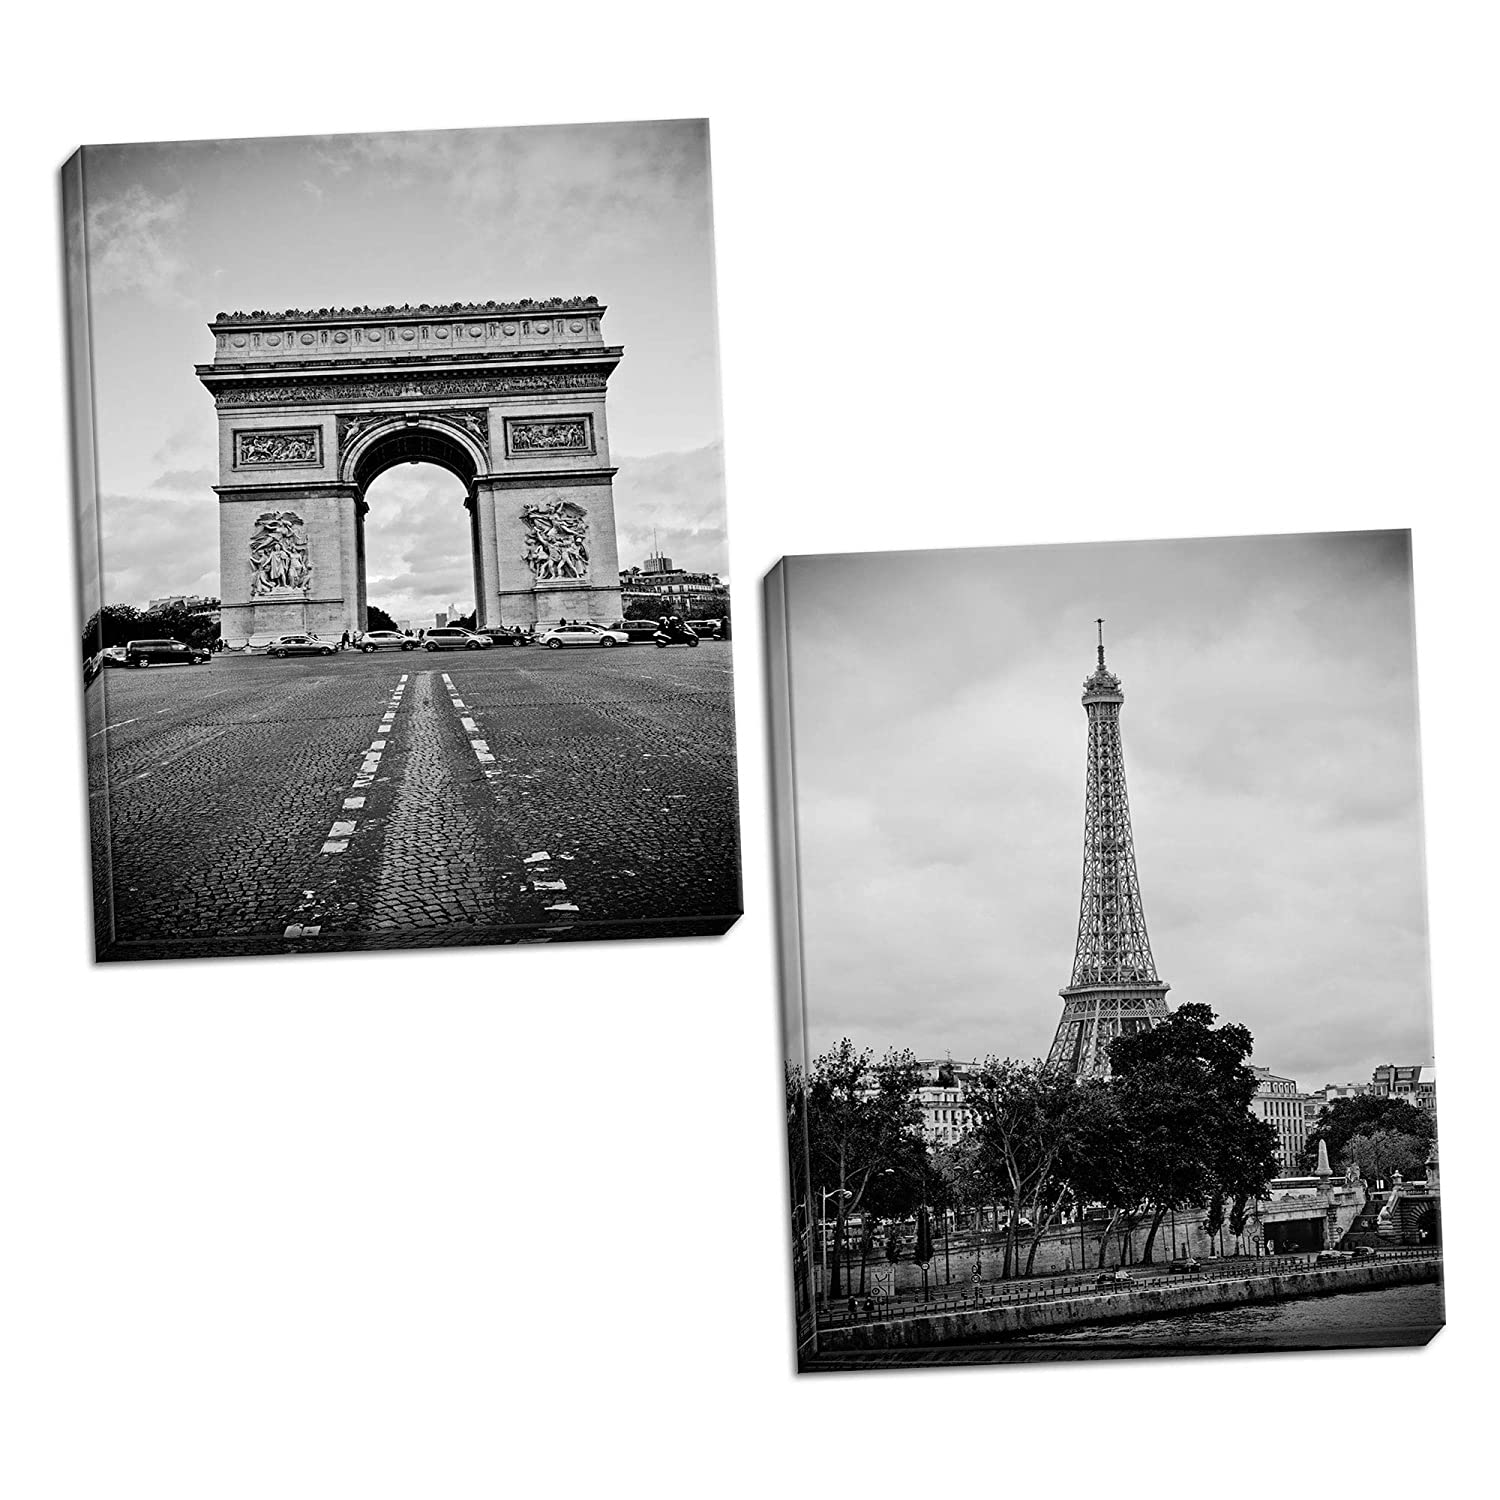 Home décor popular paris landmarks arc de triomphe and eiffel tower photograph prints two 11x14in hand stretched canvases ready to hang black white